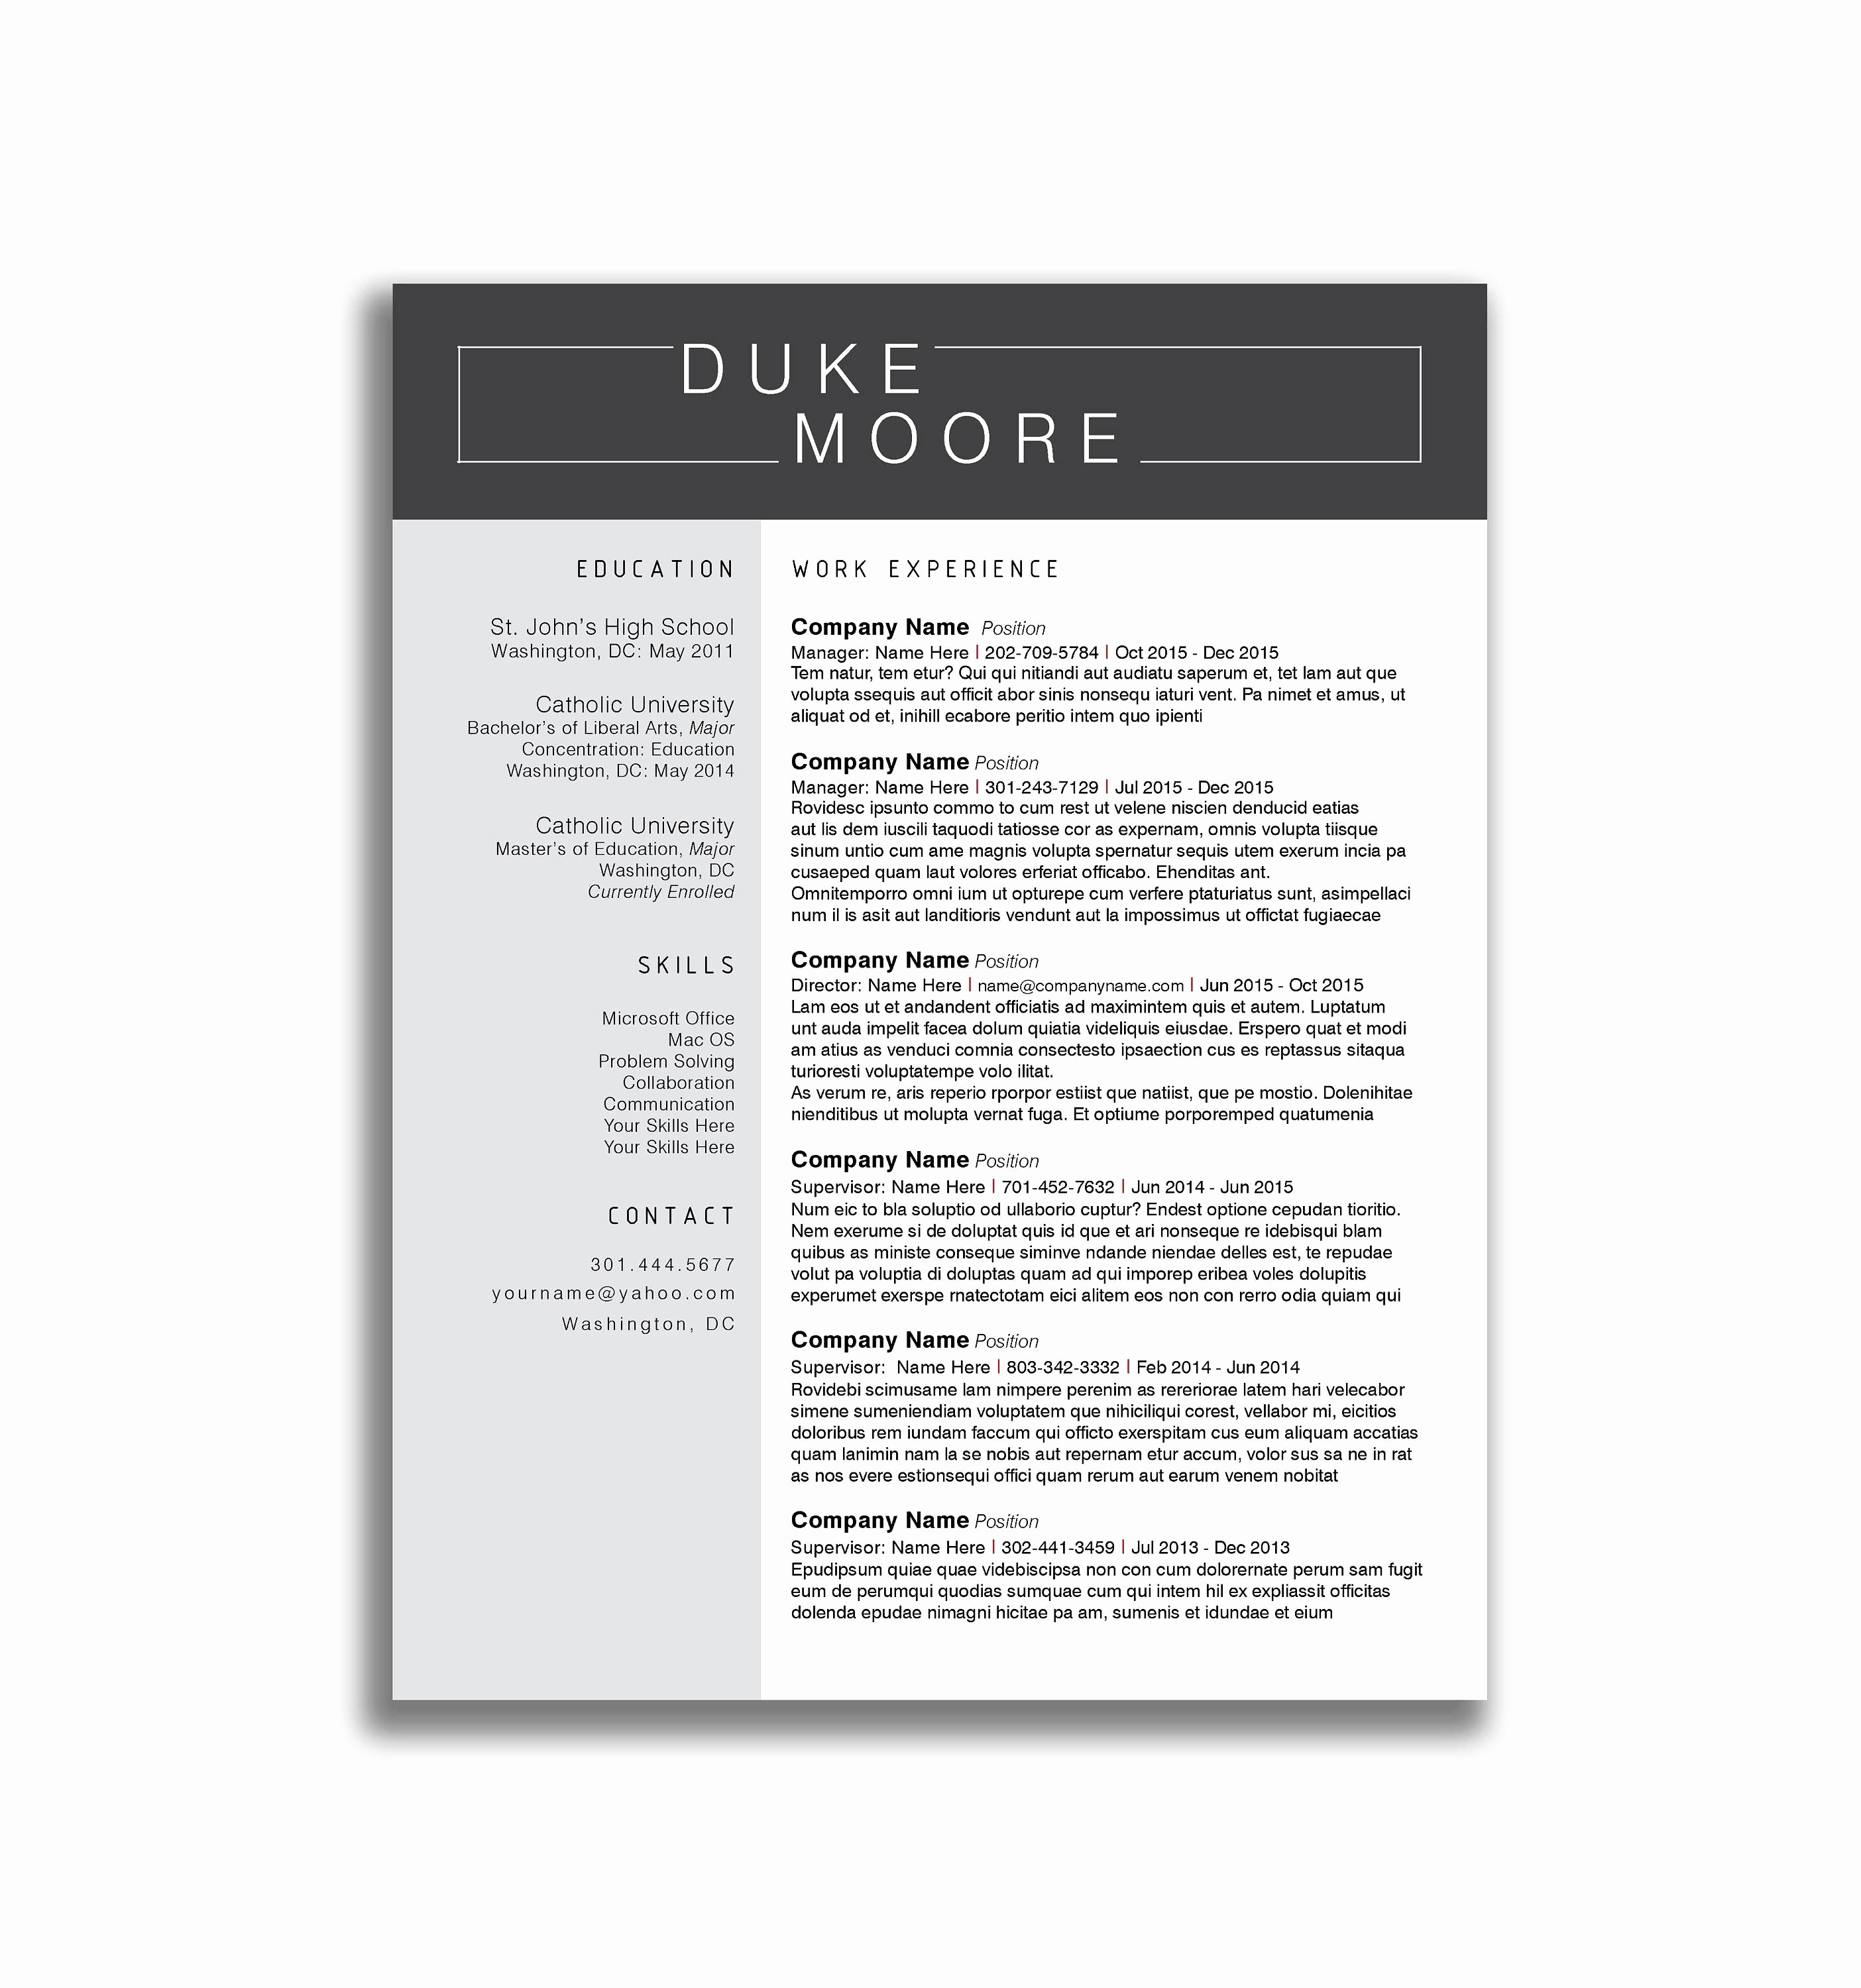 Free Functional Resume Template - Bullet Point Resume Template Bination Resume Template Functional